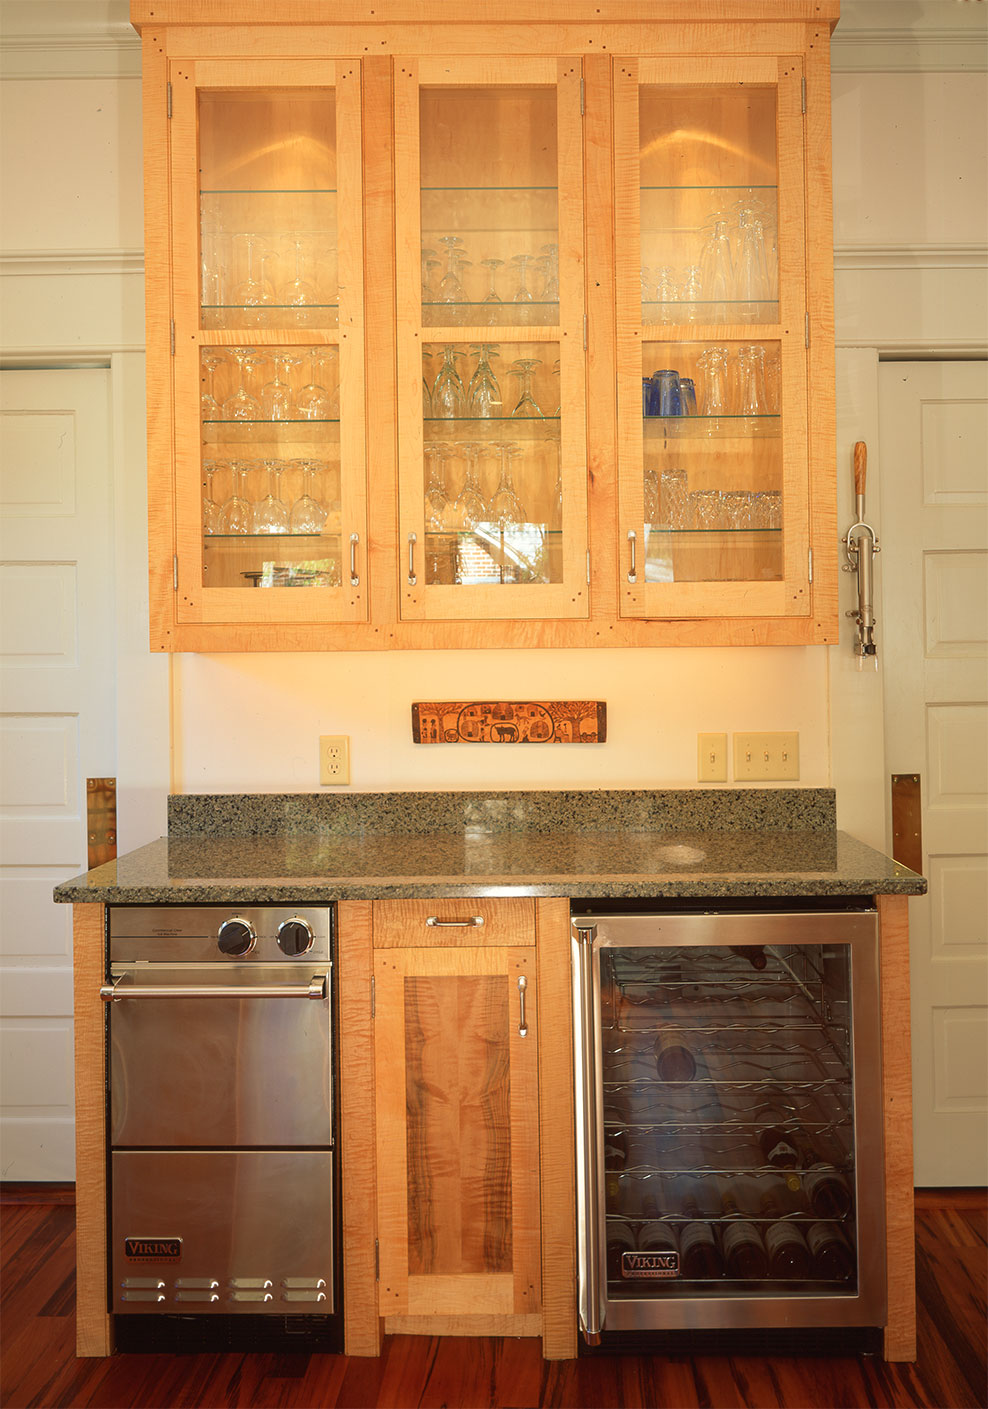 Figured Maple Cabinets